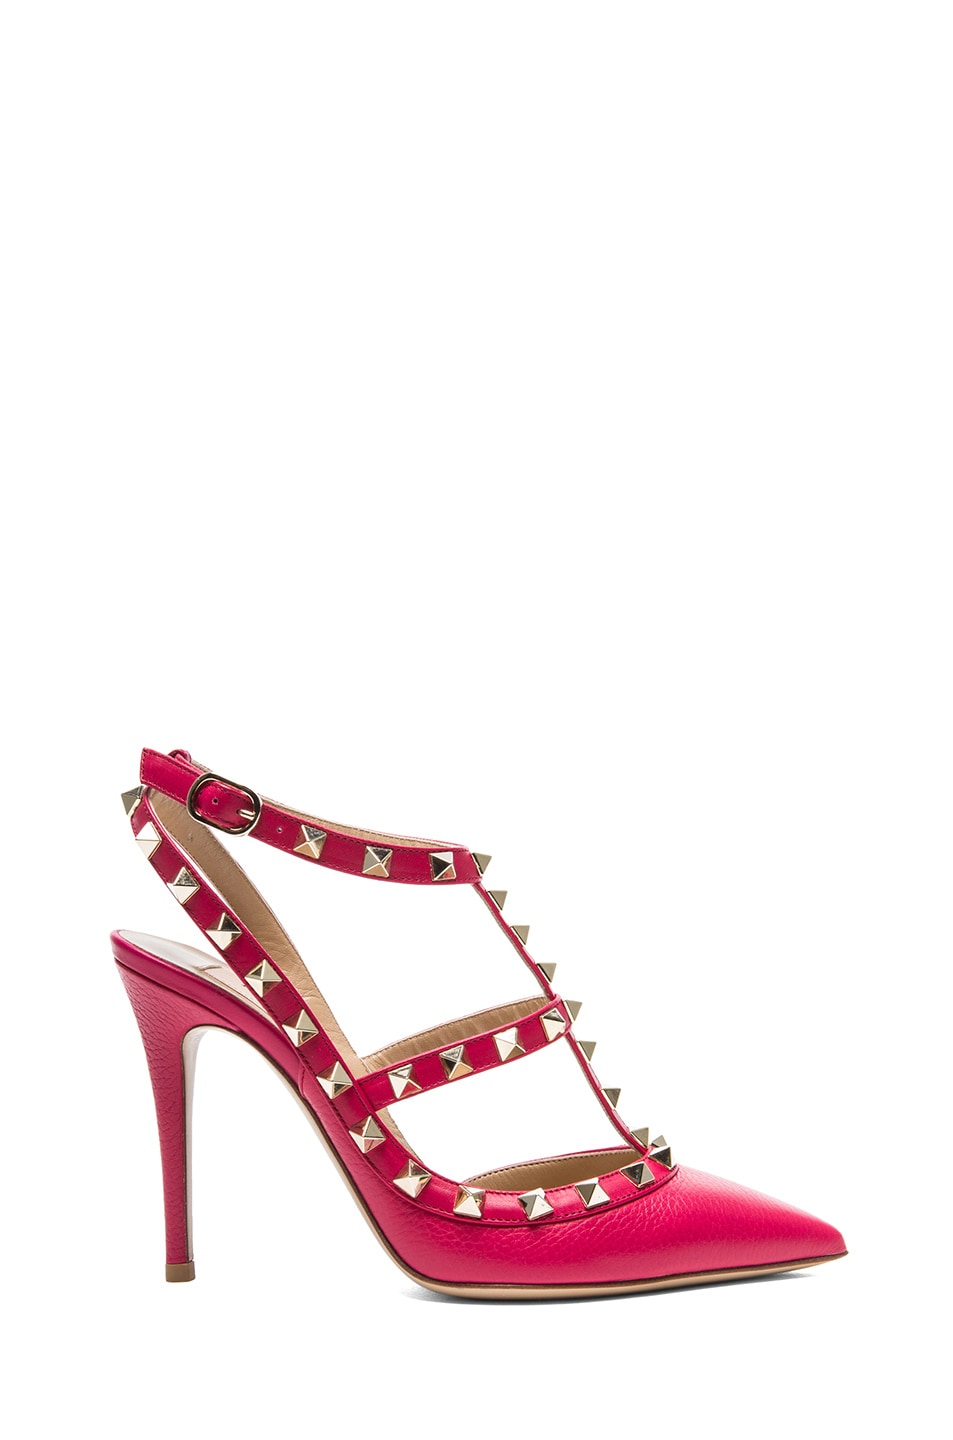 Image 1 of Valentino Rockstud Leather Slingbacks T.100 in Cyclamin